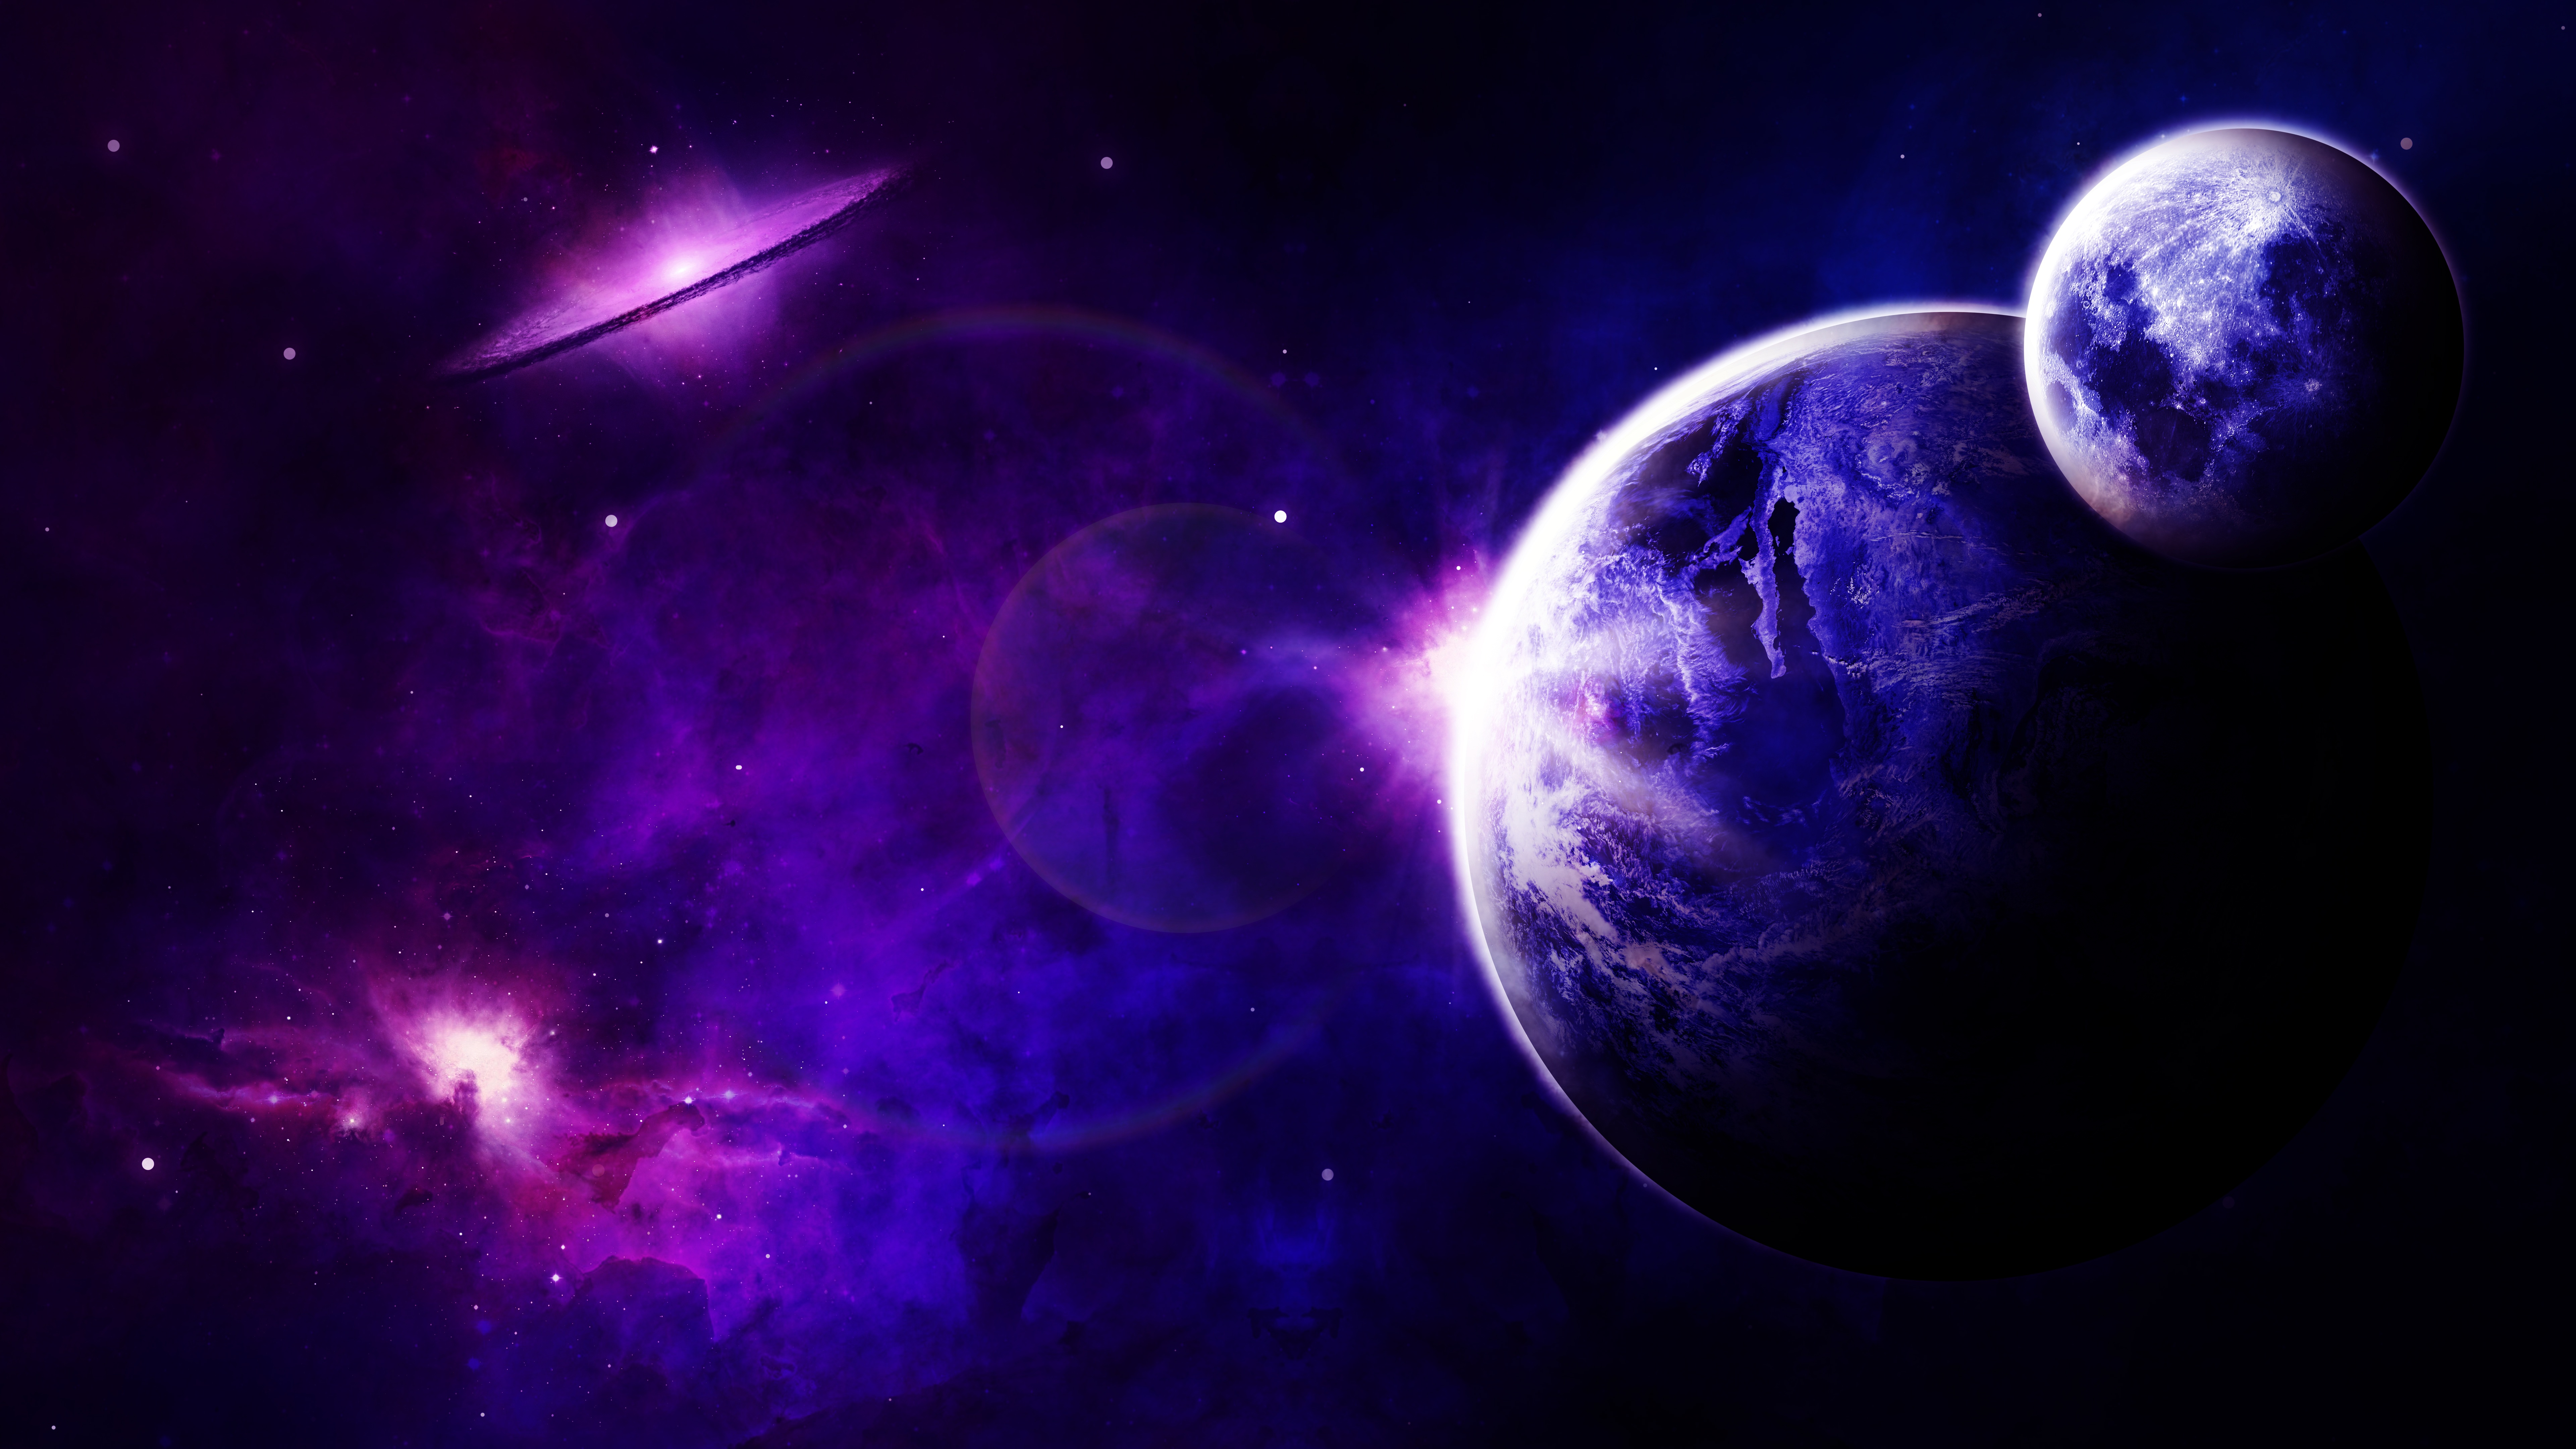 98876 download wallpaper Universe, Planet, Space, Astronomy, Galaxy screensavers and pictures for free